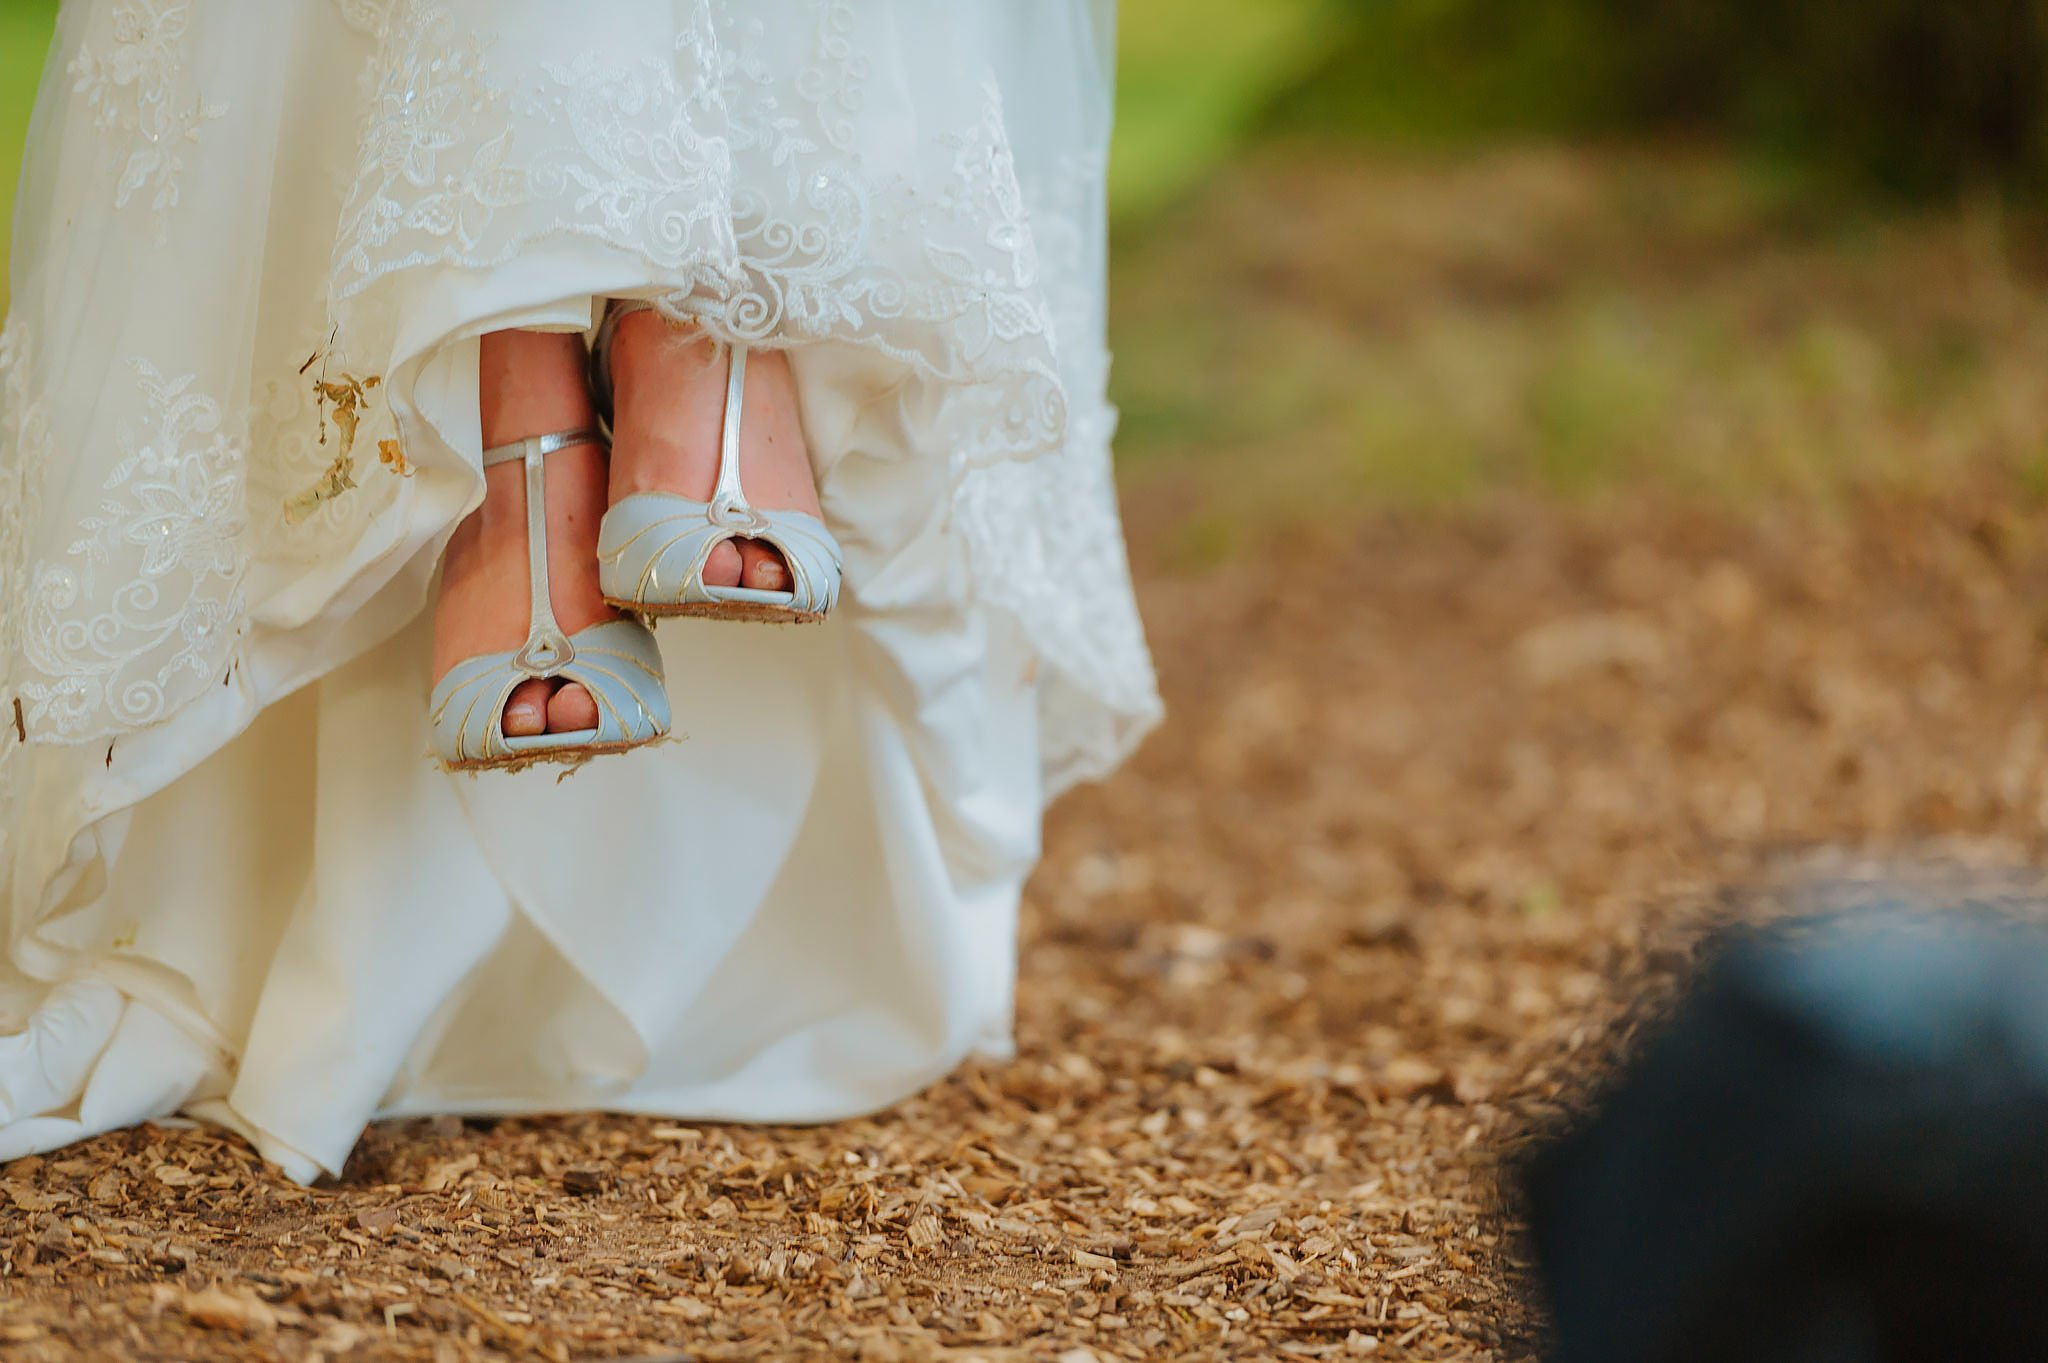 Wedding photography at Hellens Manor in Herefordshire, West Midlands | Shelley + Ian 124